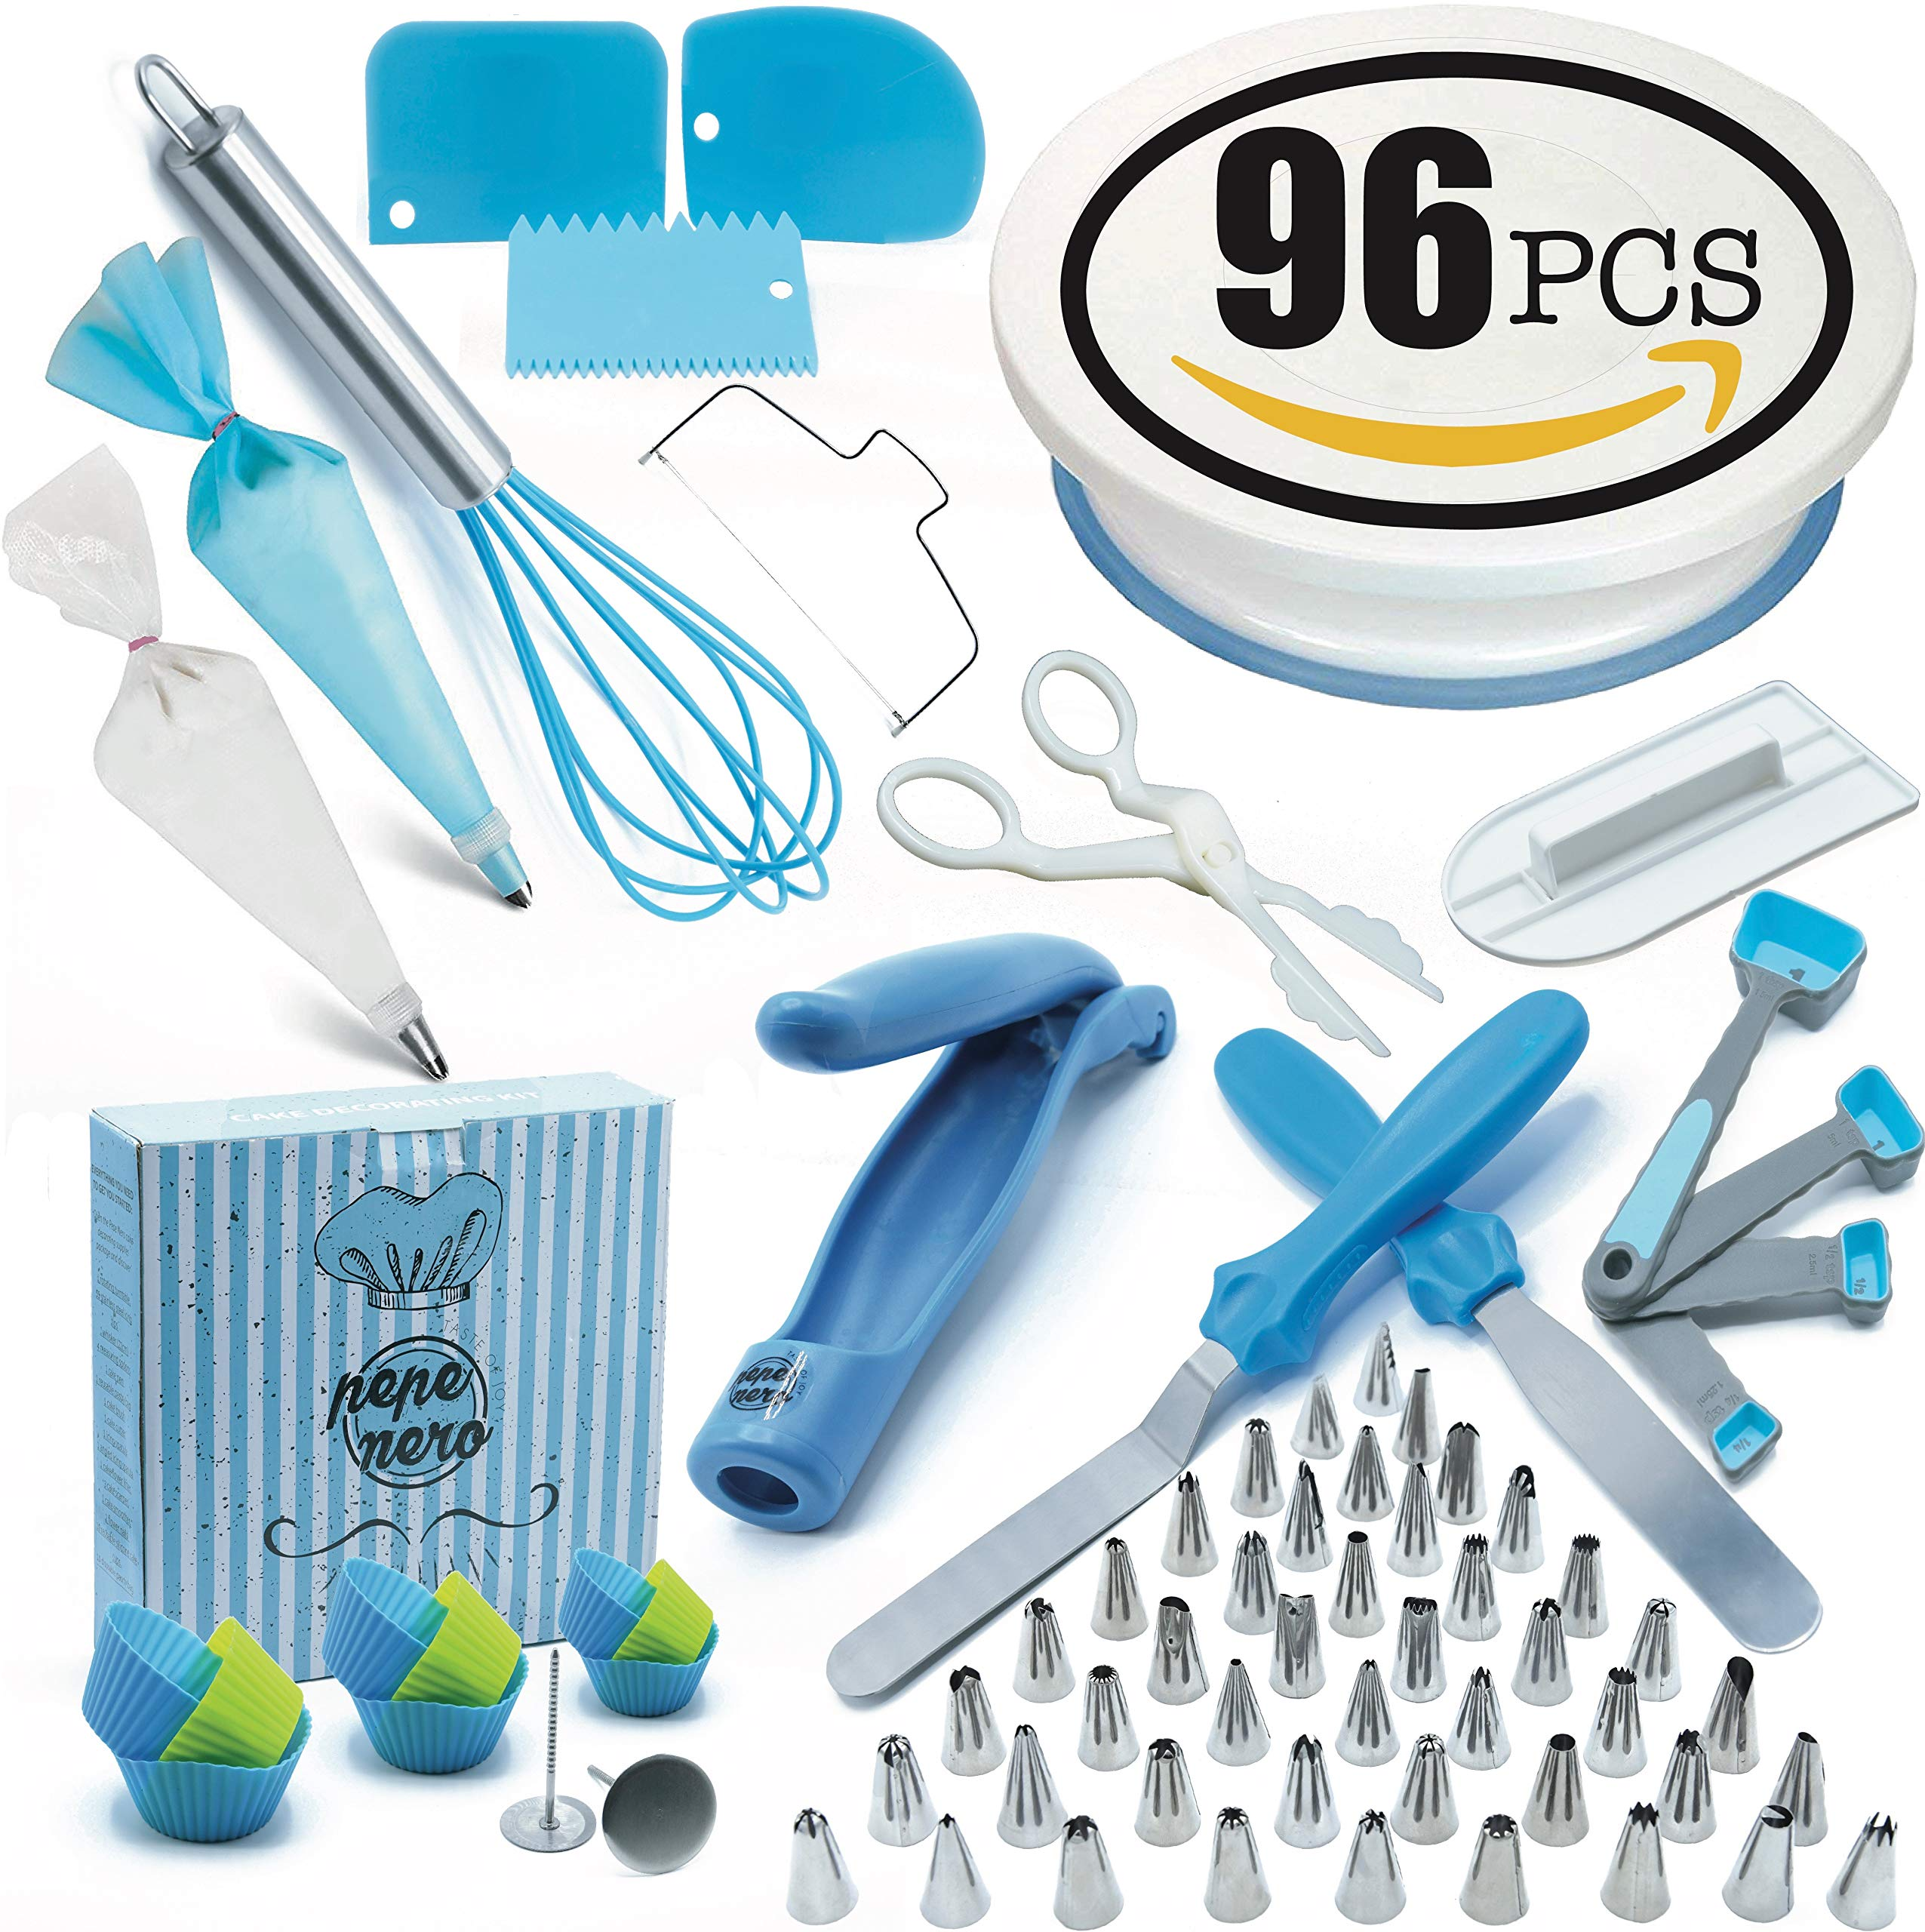 Cake Decorating Supplies Set 96 Pcs by Pepe Nero–Icing Tips, Rotating Turntable, Measuring Spoons, Icing, Tools& Others For Birthdays,Cookies,Piping, Baking,Frosting, Pastry, Cupcakes, Weddings & more